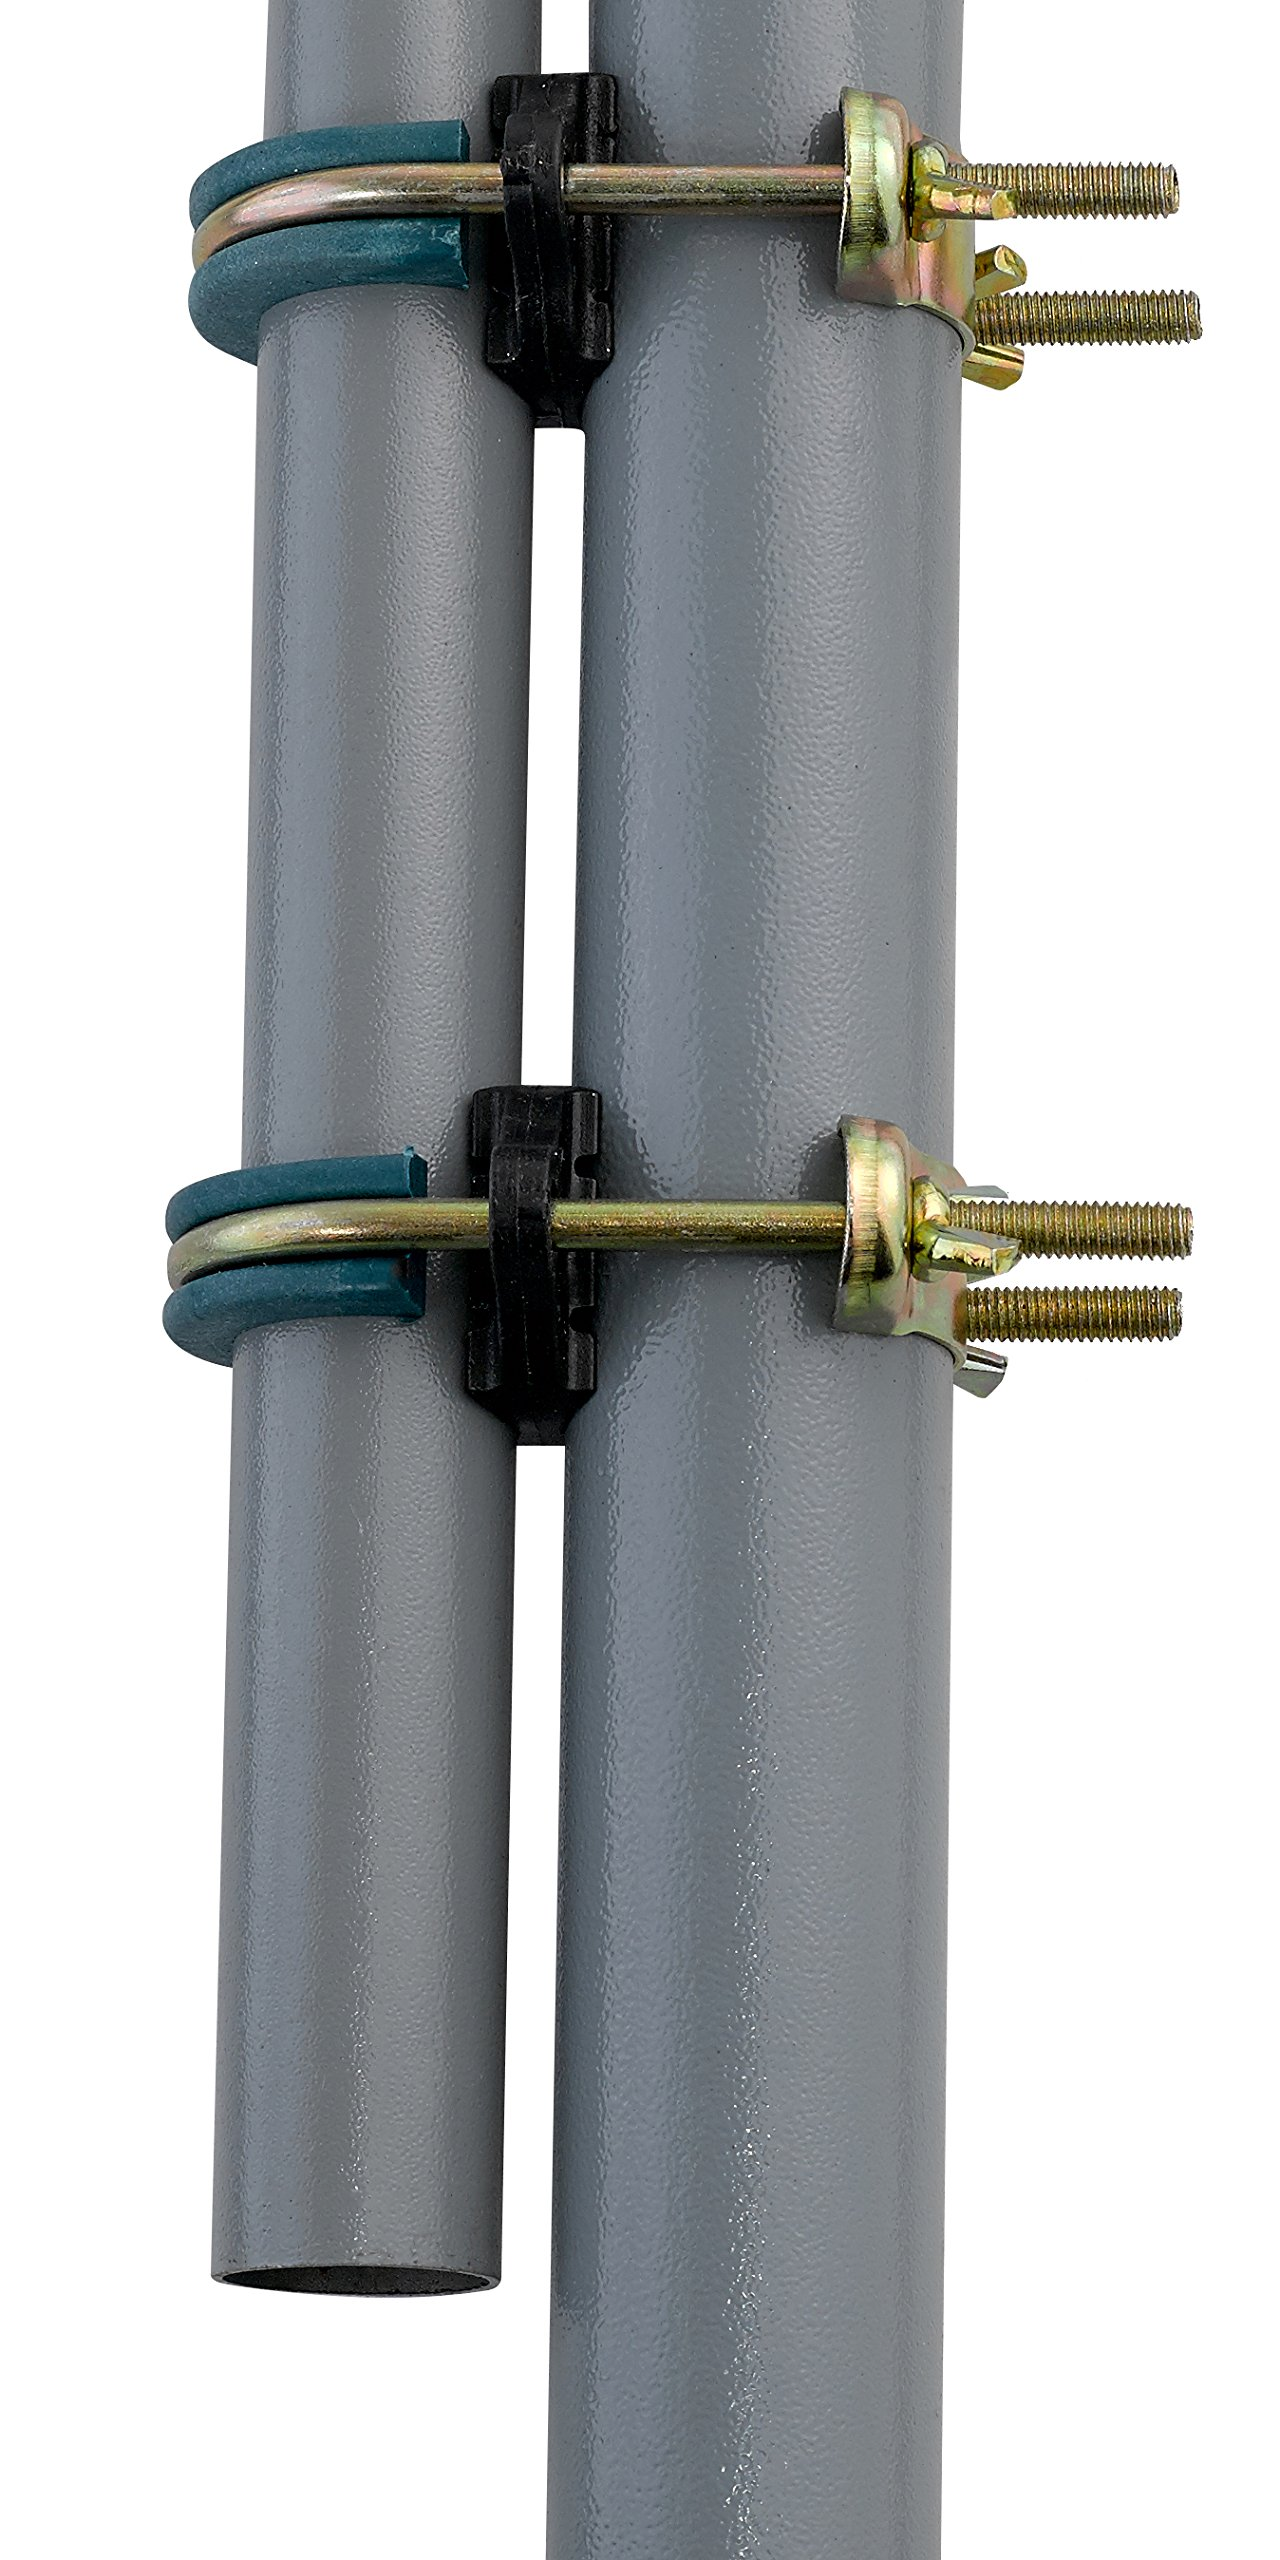 Upper Bounce Trampoline Enclosure Pole Connecter, Fits for Poles Measuringup to 1.5'' Diameter, Andup to 1.75'' Diameter Leg by Upper Bounce (Image #5)